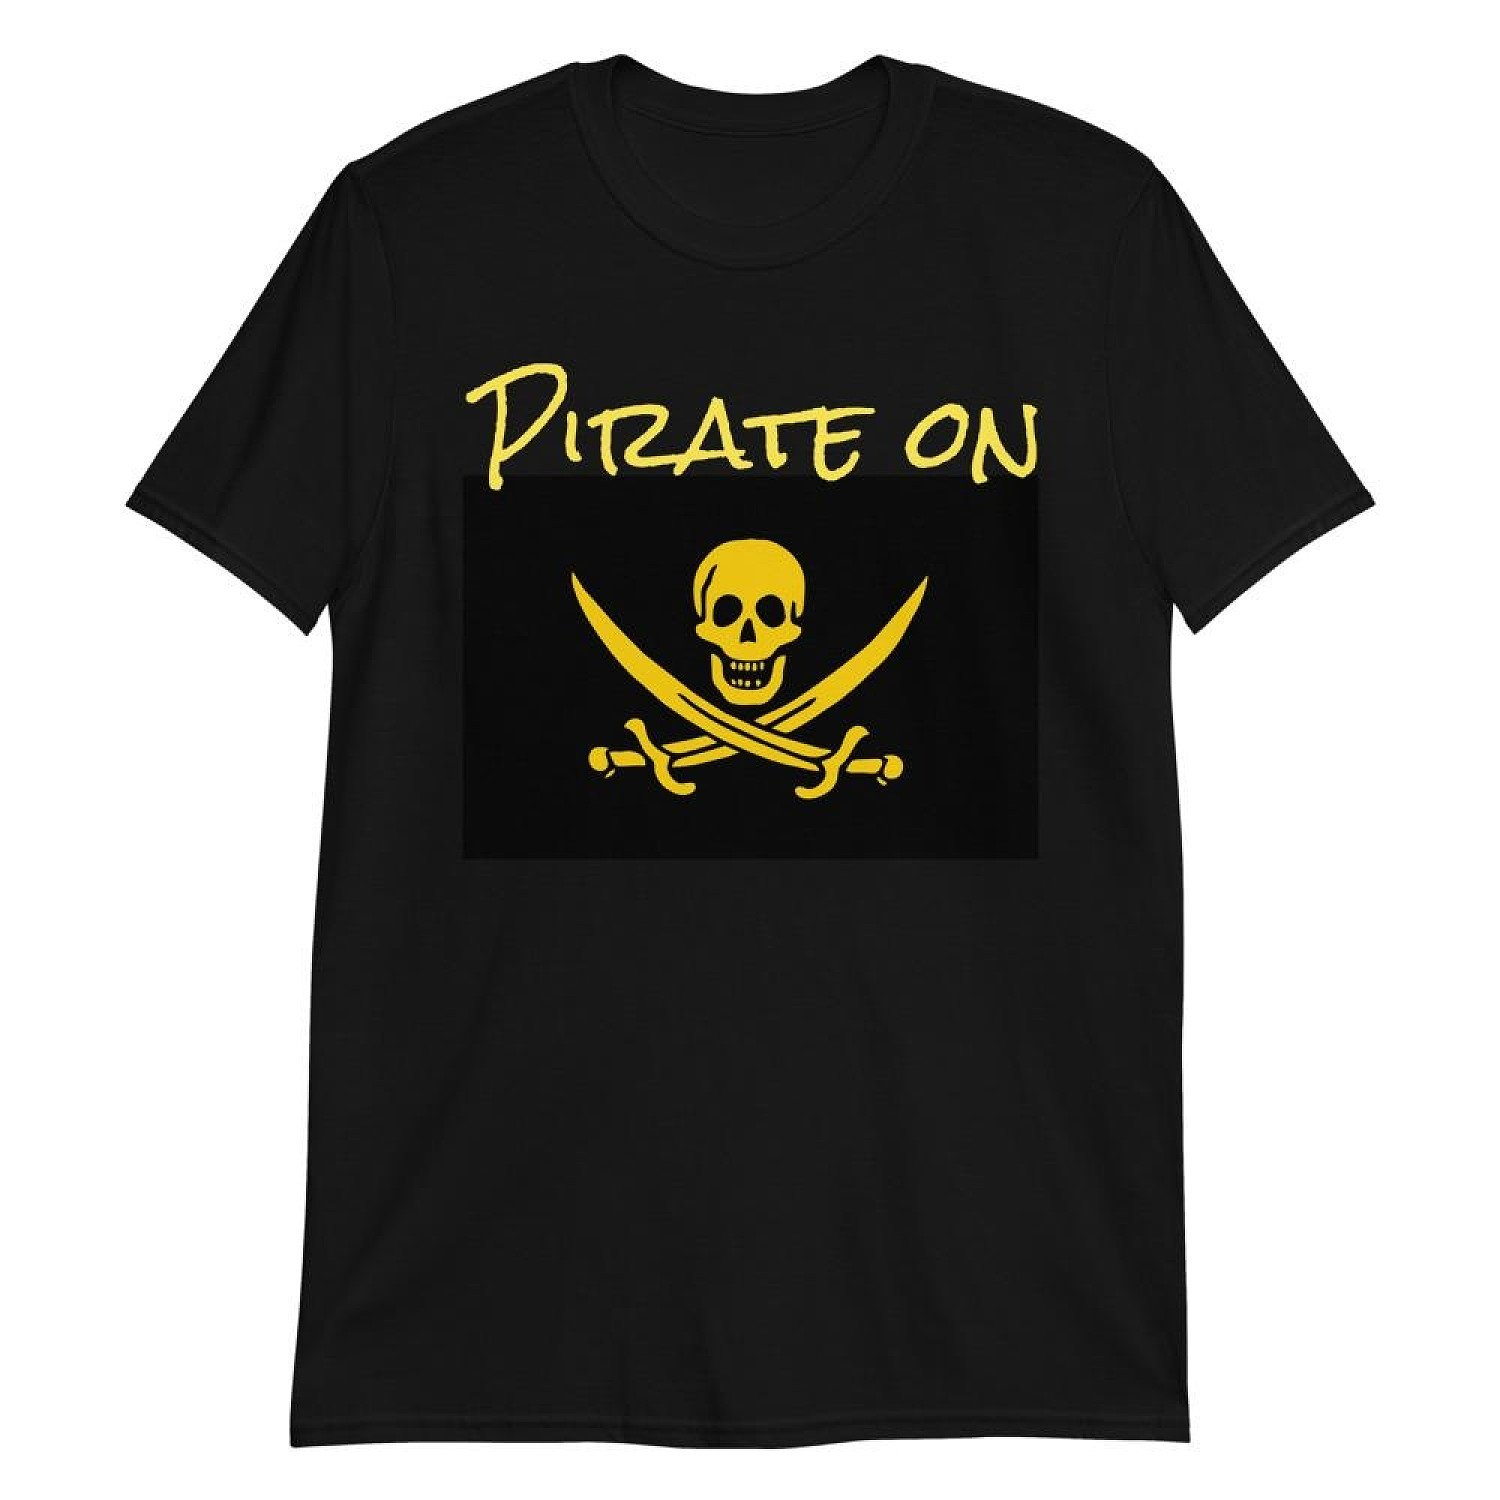 New - Pirate On, Unisex T shirt Released in Store Today